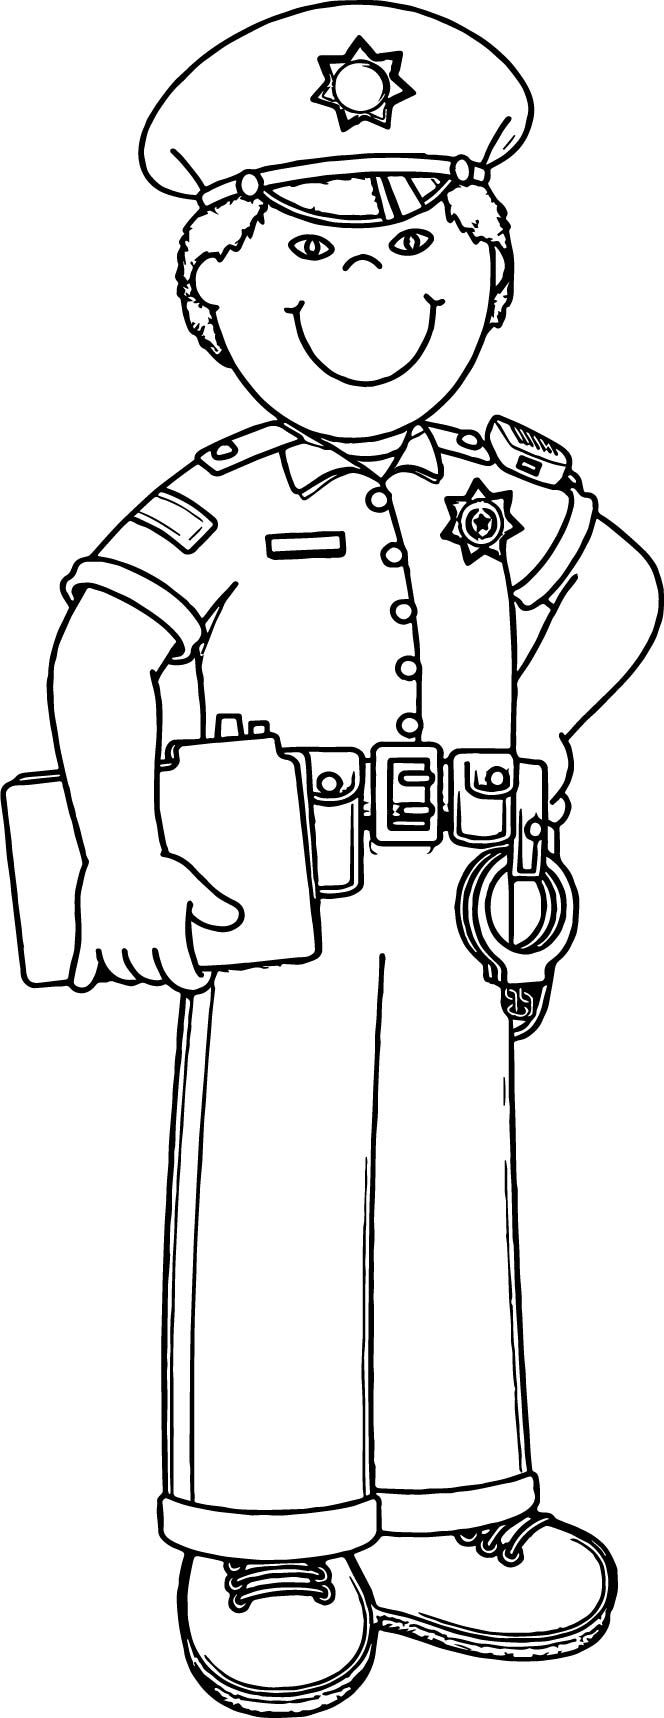 policeman coloring pages - photo#20